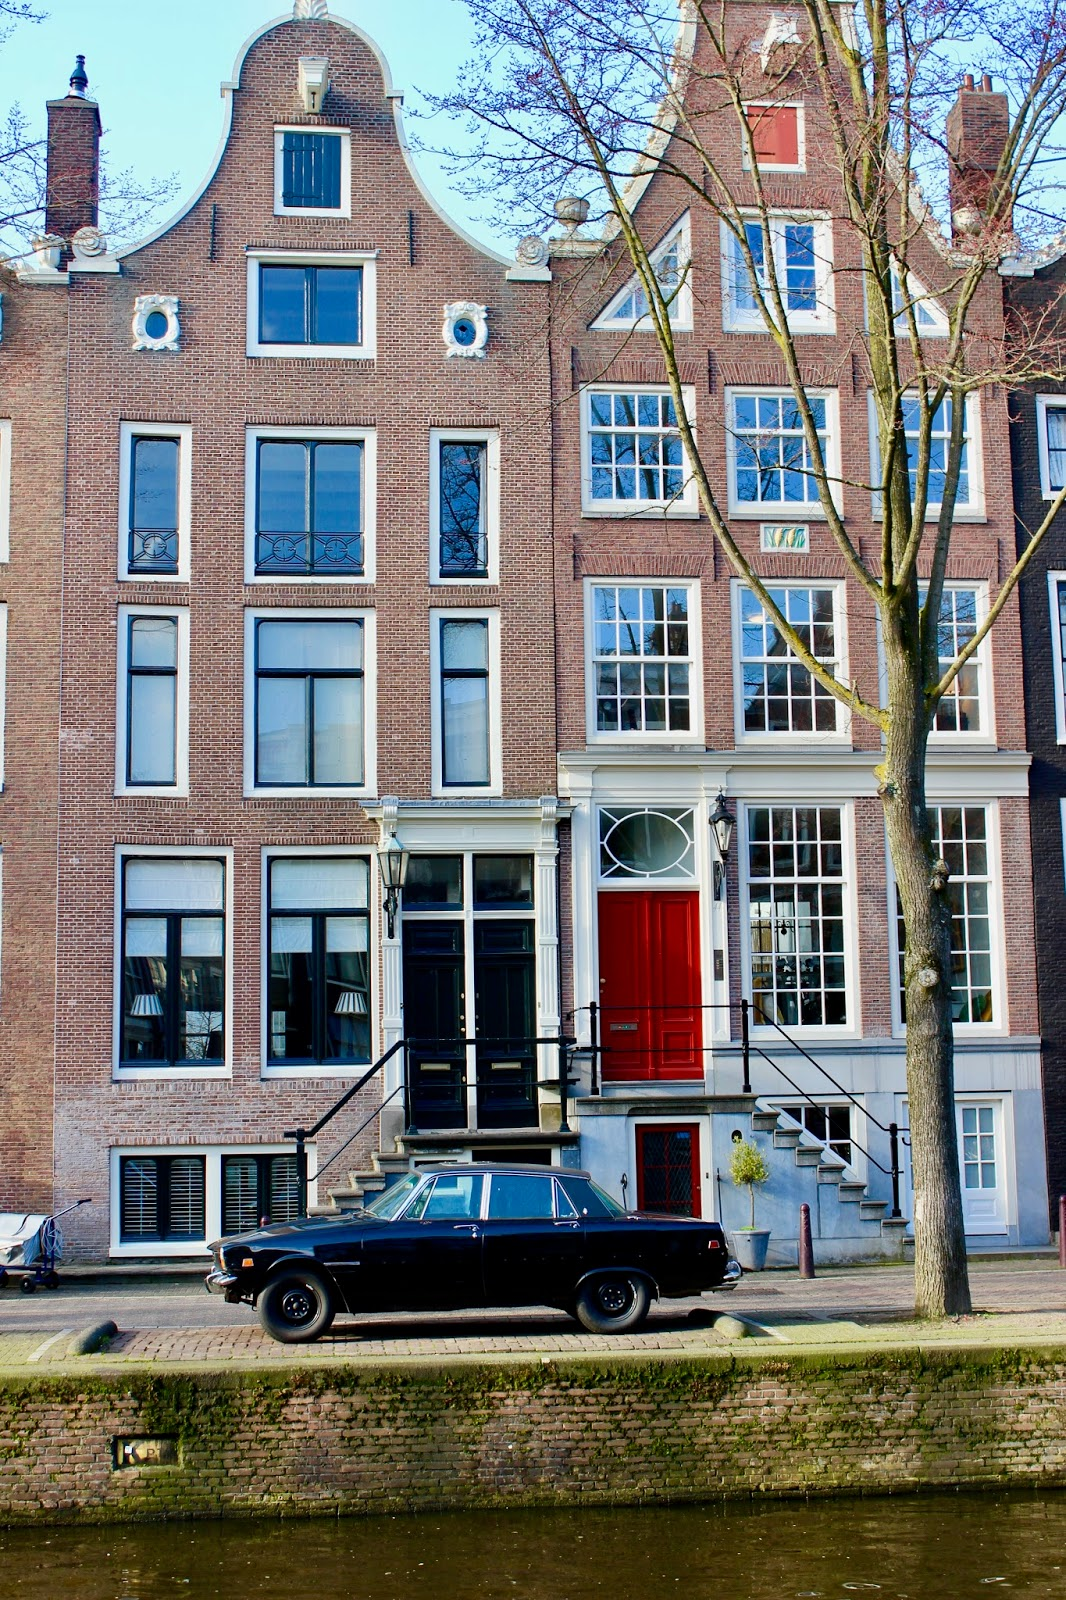 Pretty Houses at Canals of Amsterdam